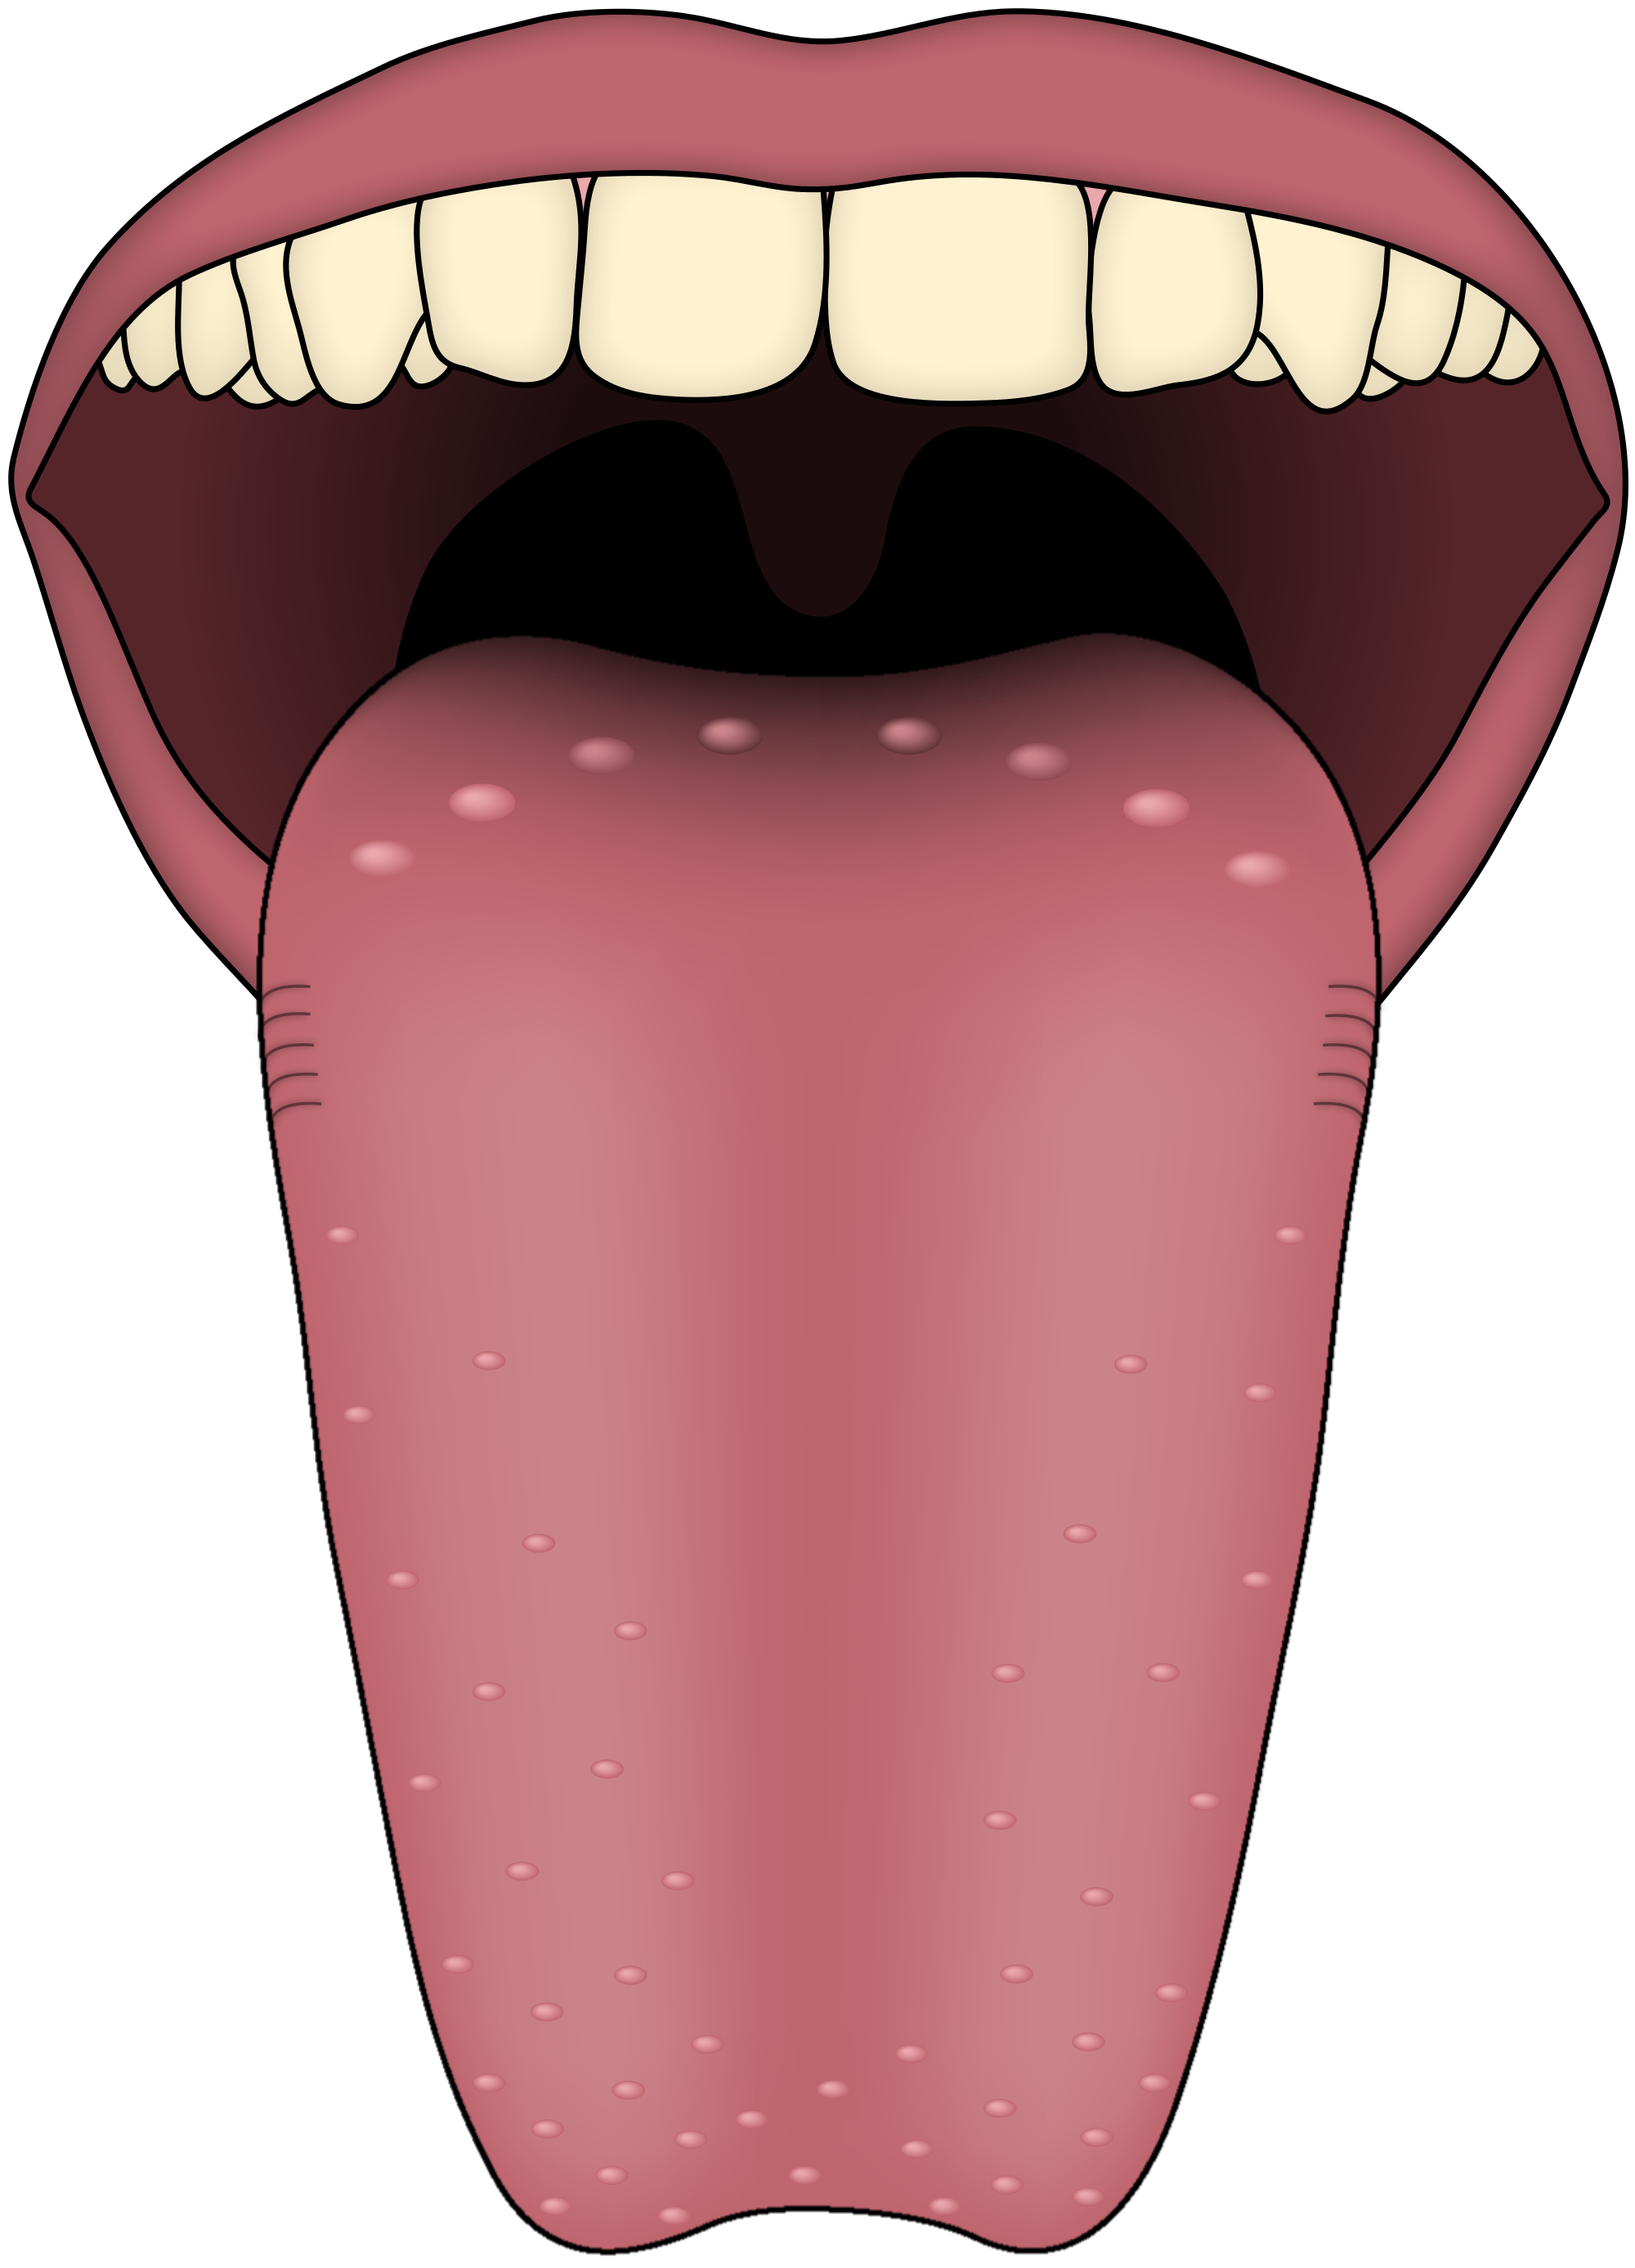 Taste clipart red tongue. Pin by next on